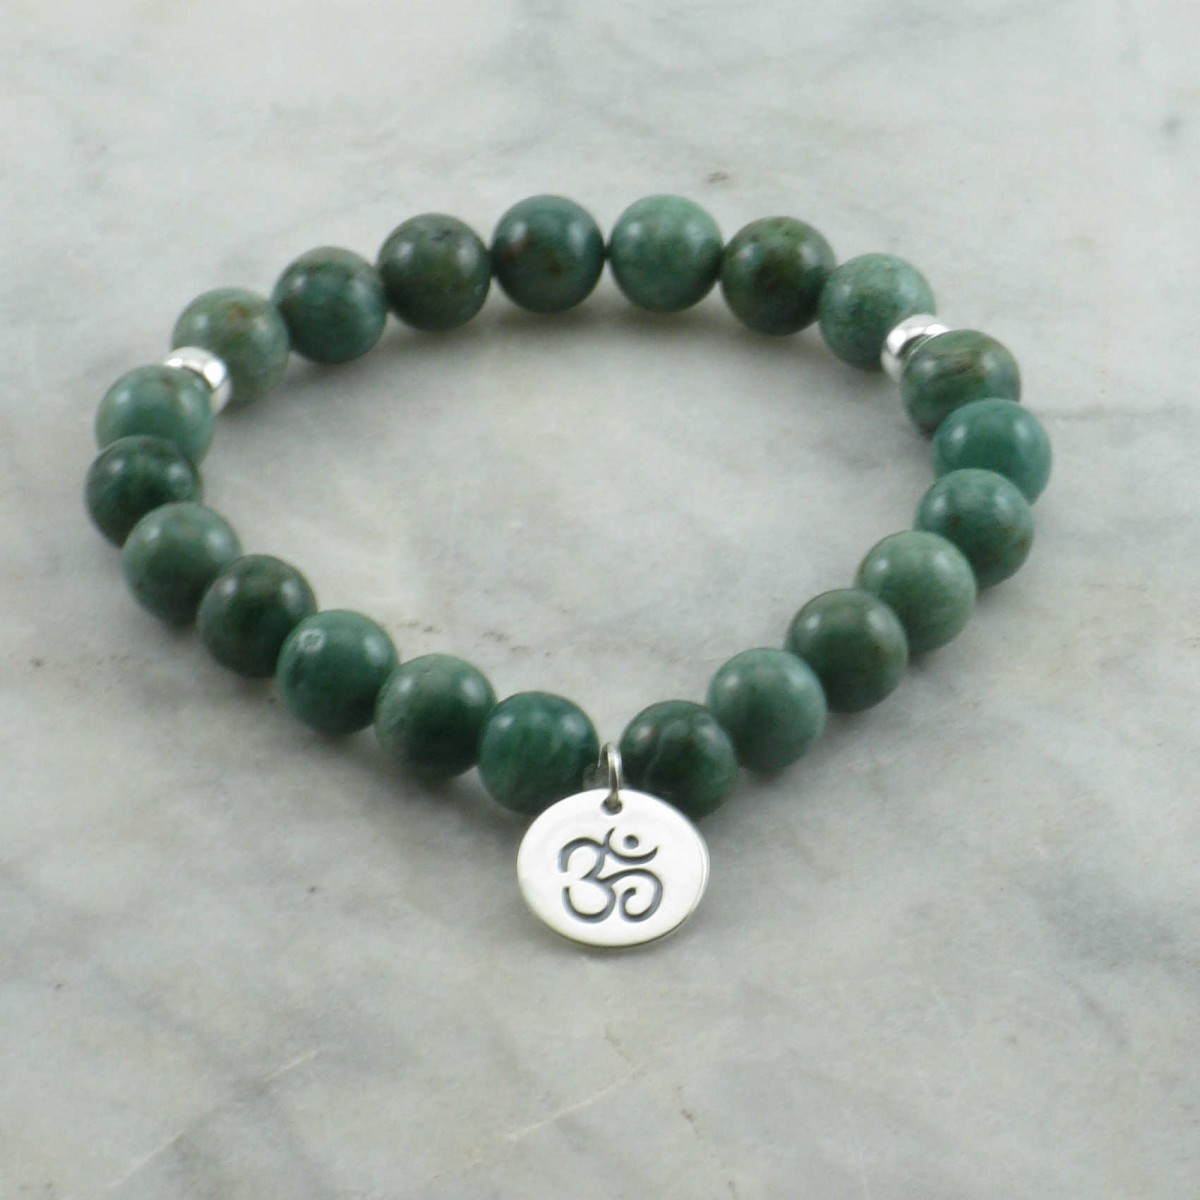 Heart_Custom_Mala_Bracelet_21_Jade_Mala_Beads